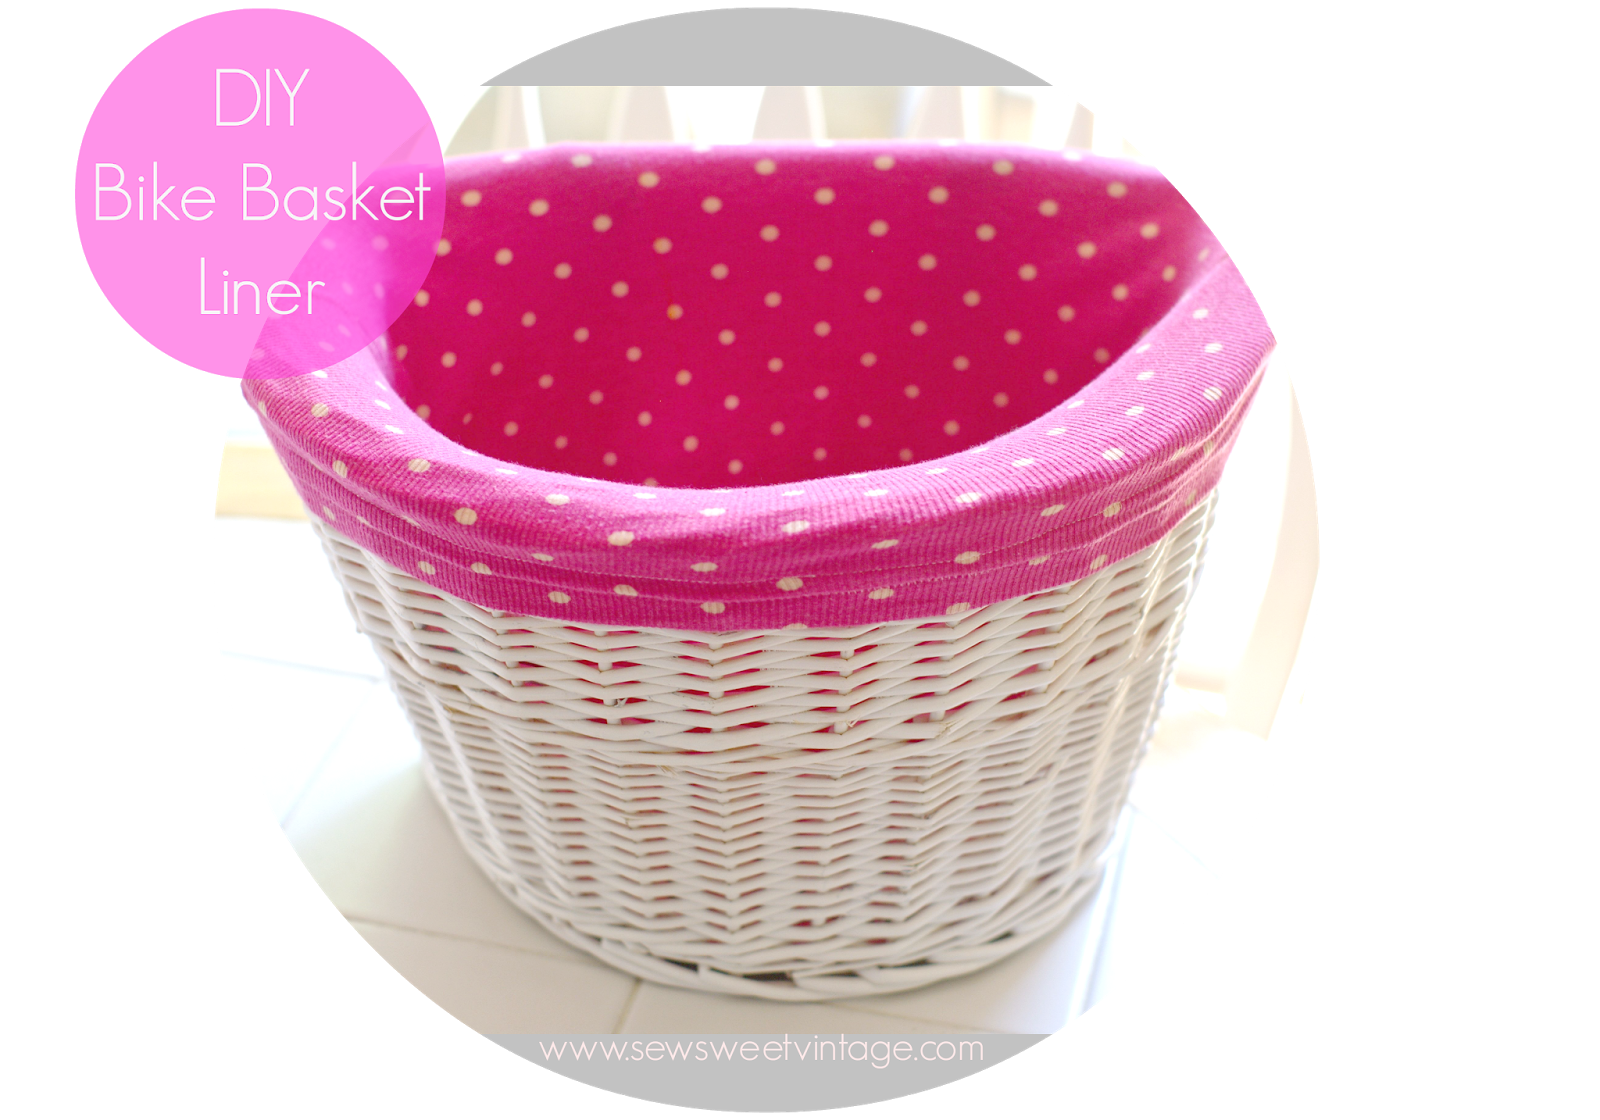 diy bike basket liner made with recycled tank top